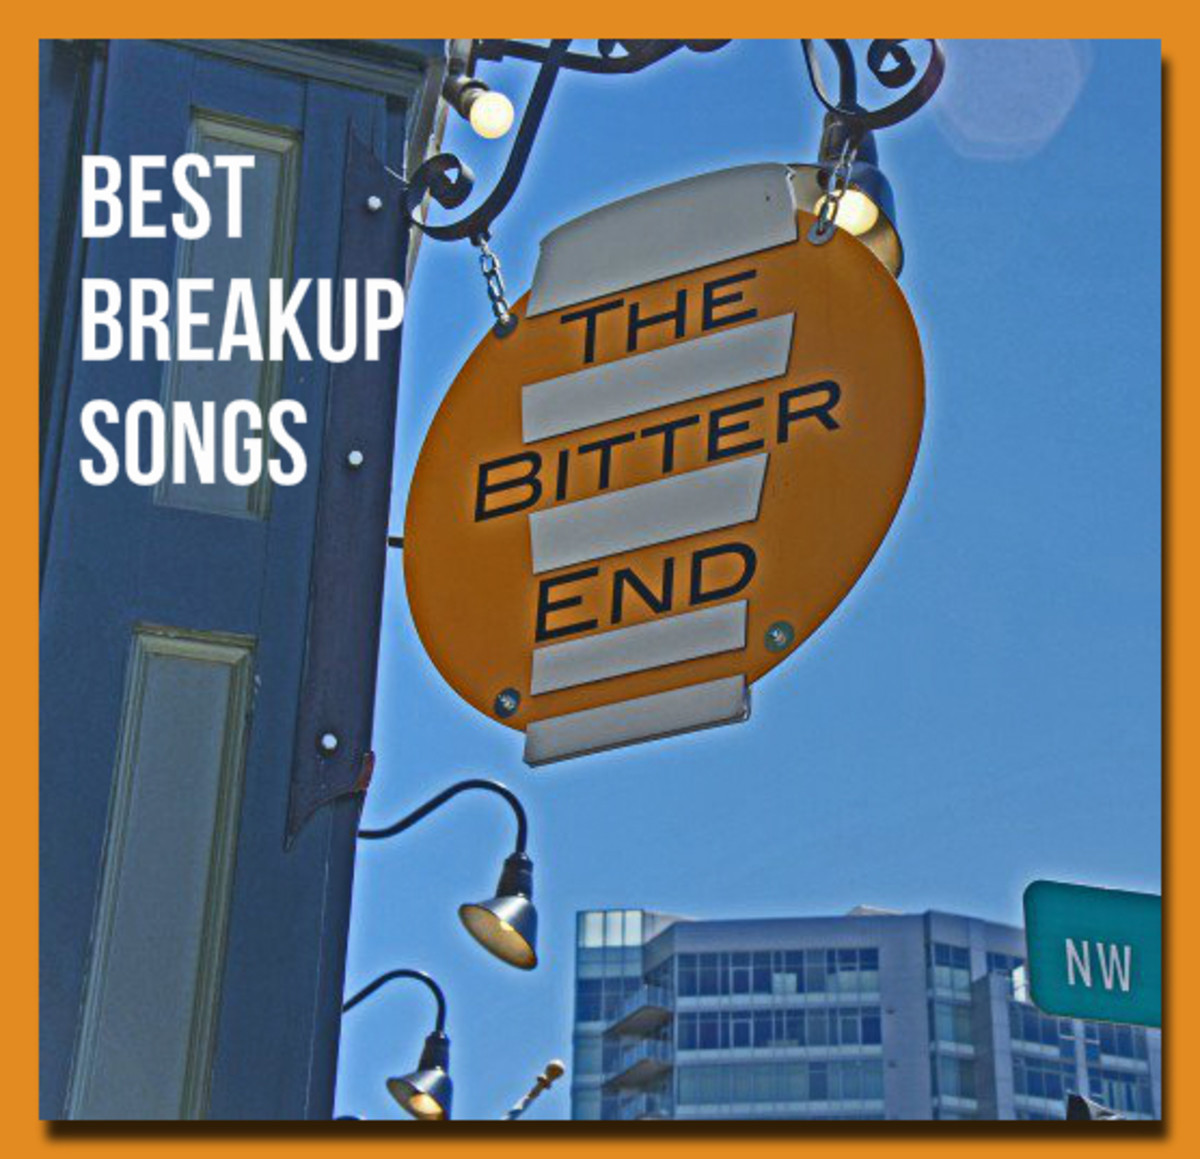 142 Songs About Breakups, Heartbreak, and Divorce